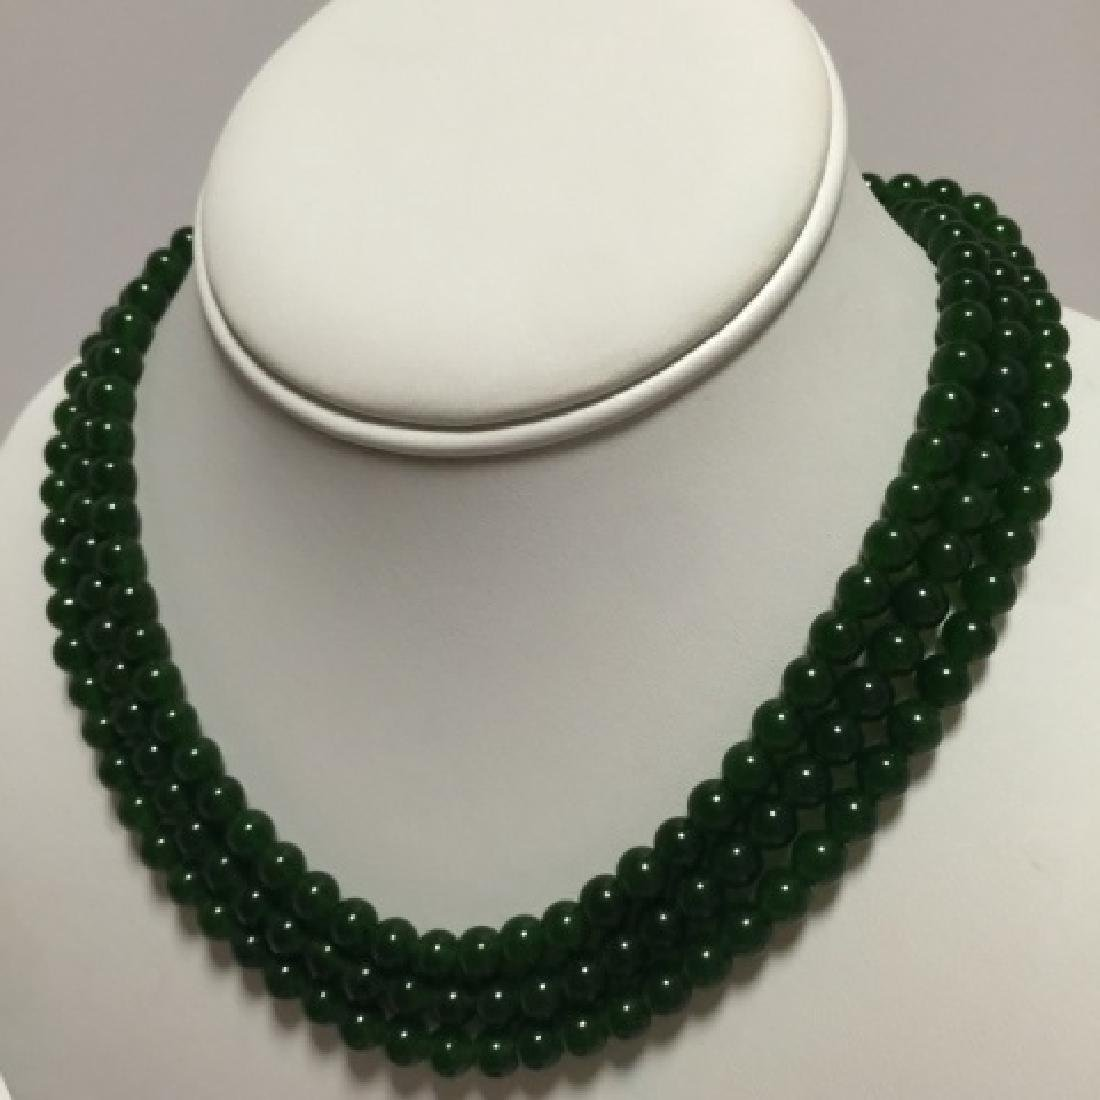 Three Chinese Green Jade Round Bead Necklaces - 2